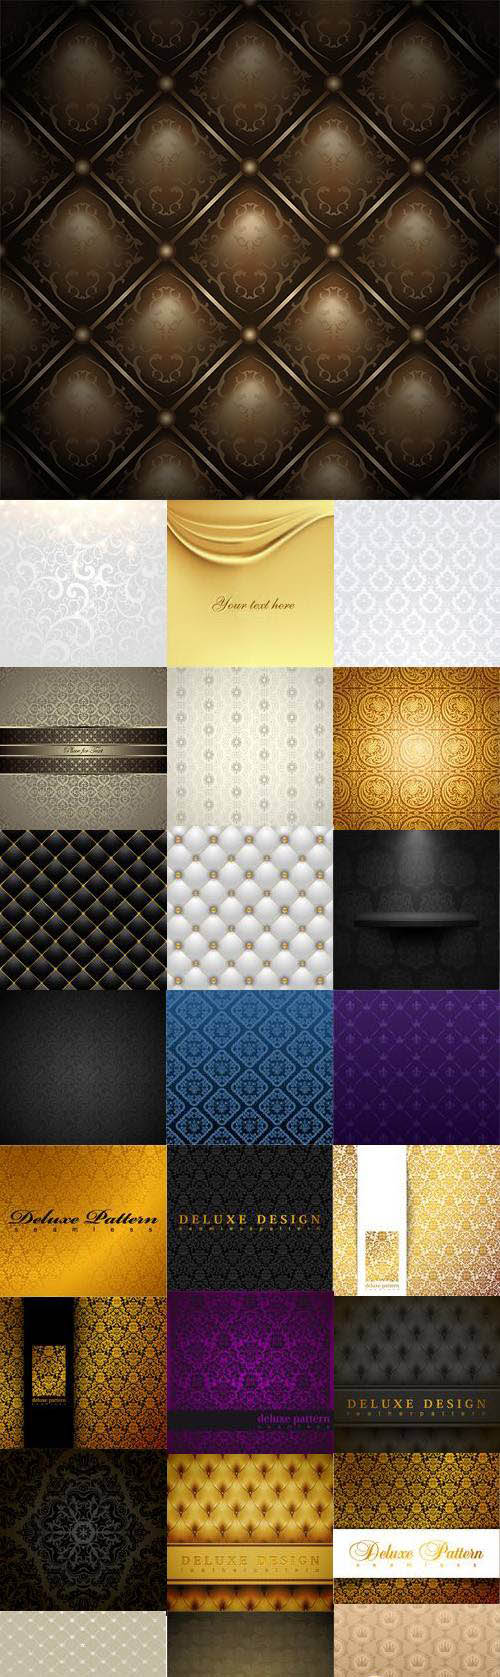 25 Deluxe Patterns Vector Set